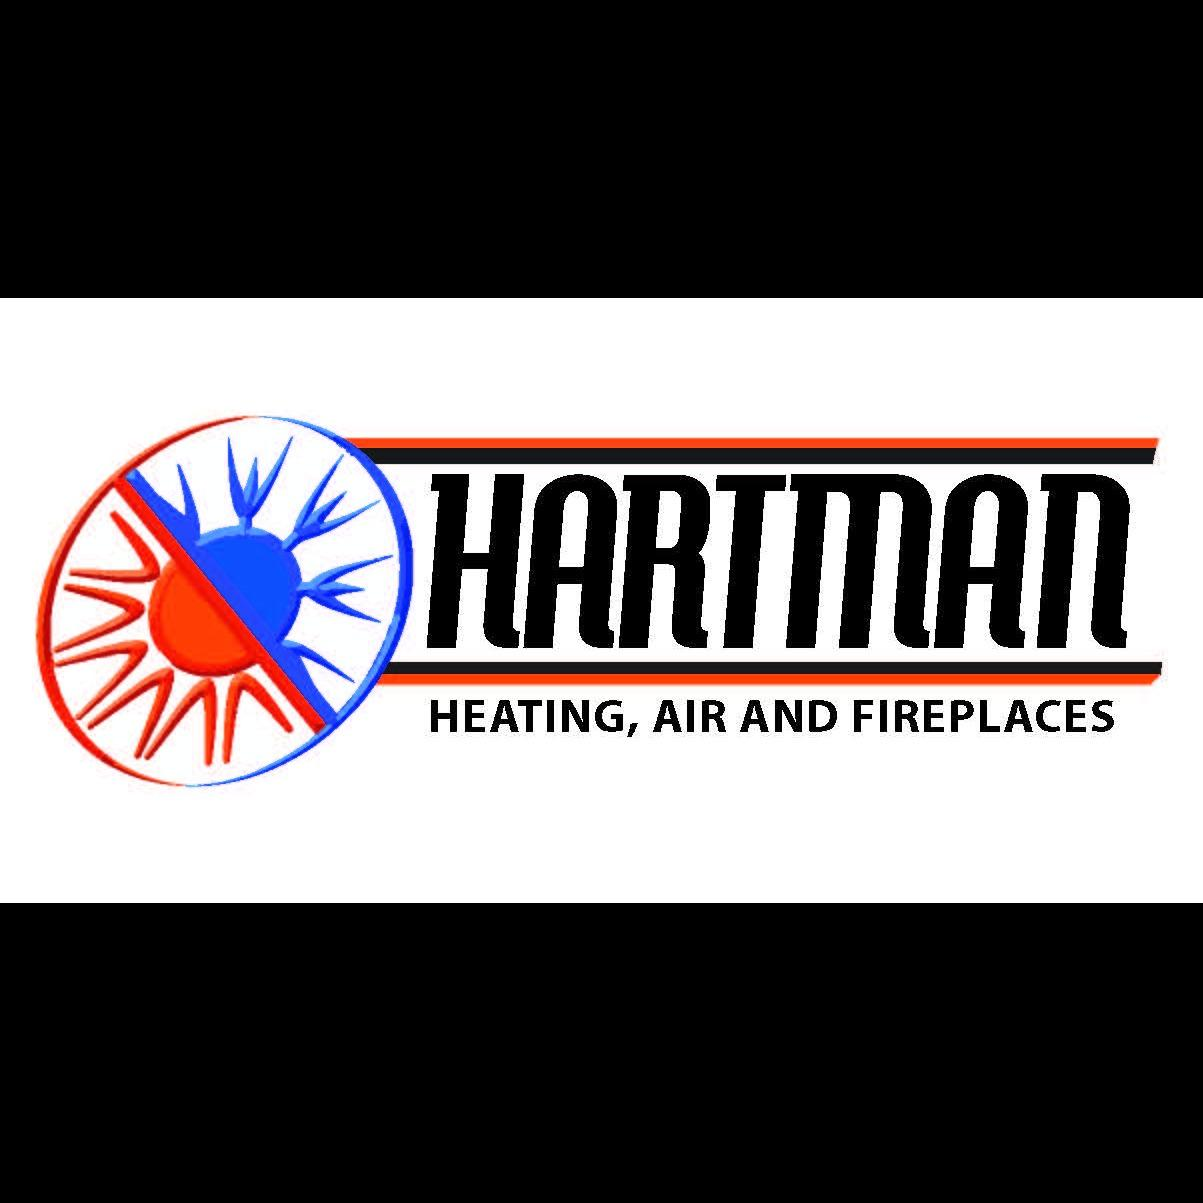 Hartman Heating, Air and Fireplaces